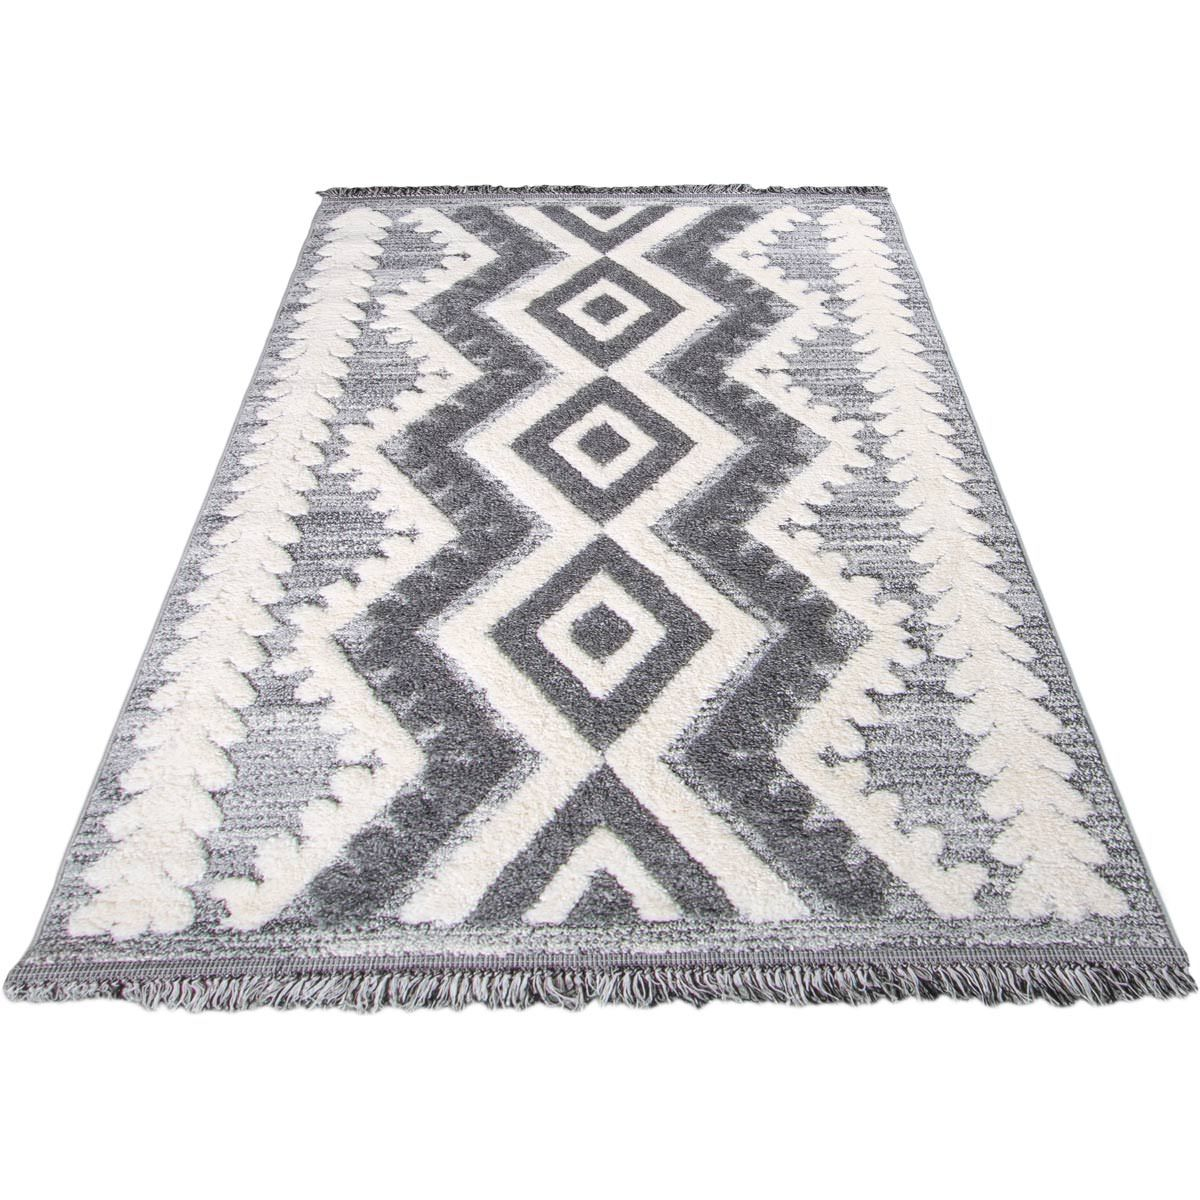 Atlas Rug 08 Grey - Fringes 6